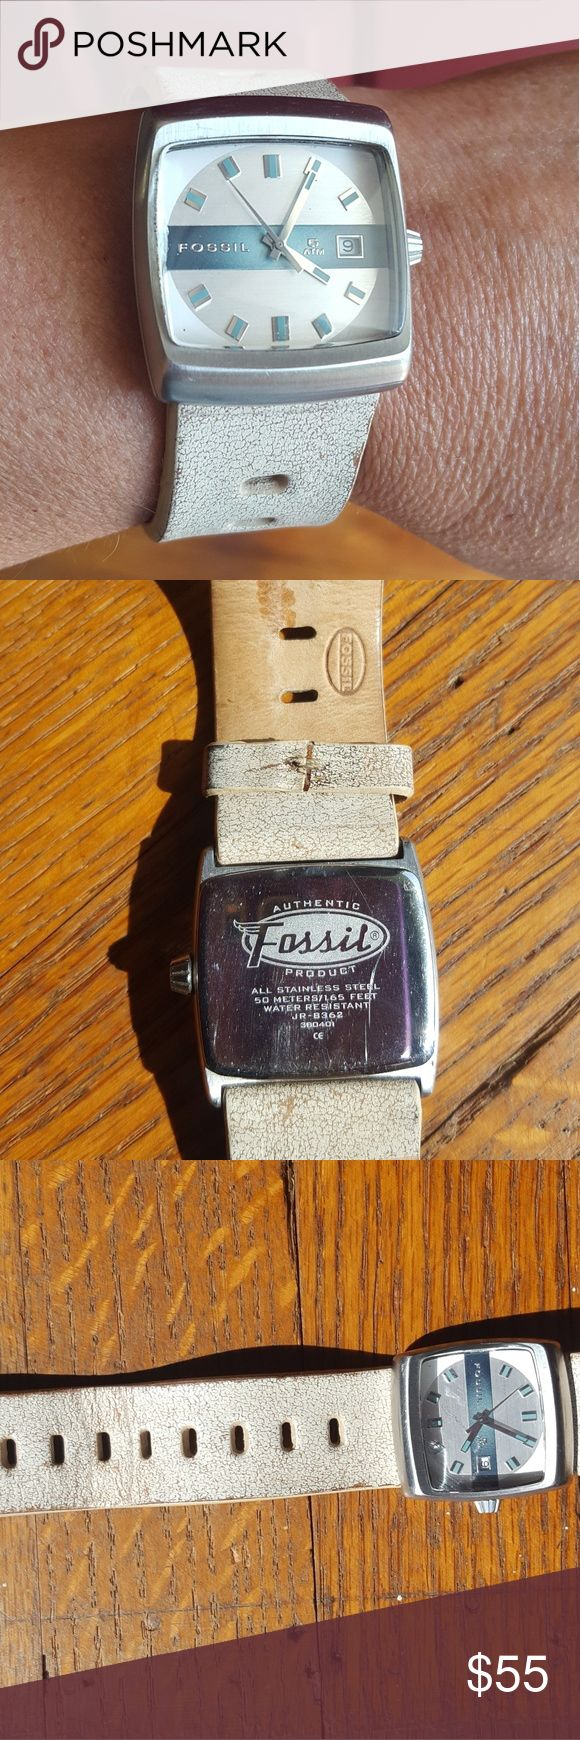 White Retro Square Fossil Watch With Date PRICE GAME !! Unique square watch with weathered-look leather band with date from Fossil. Excellent used condition. Needs battery. Fossil Accessories Watches